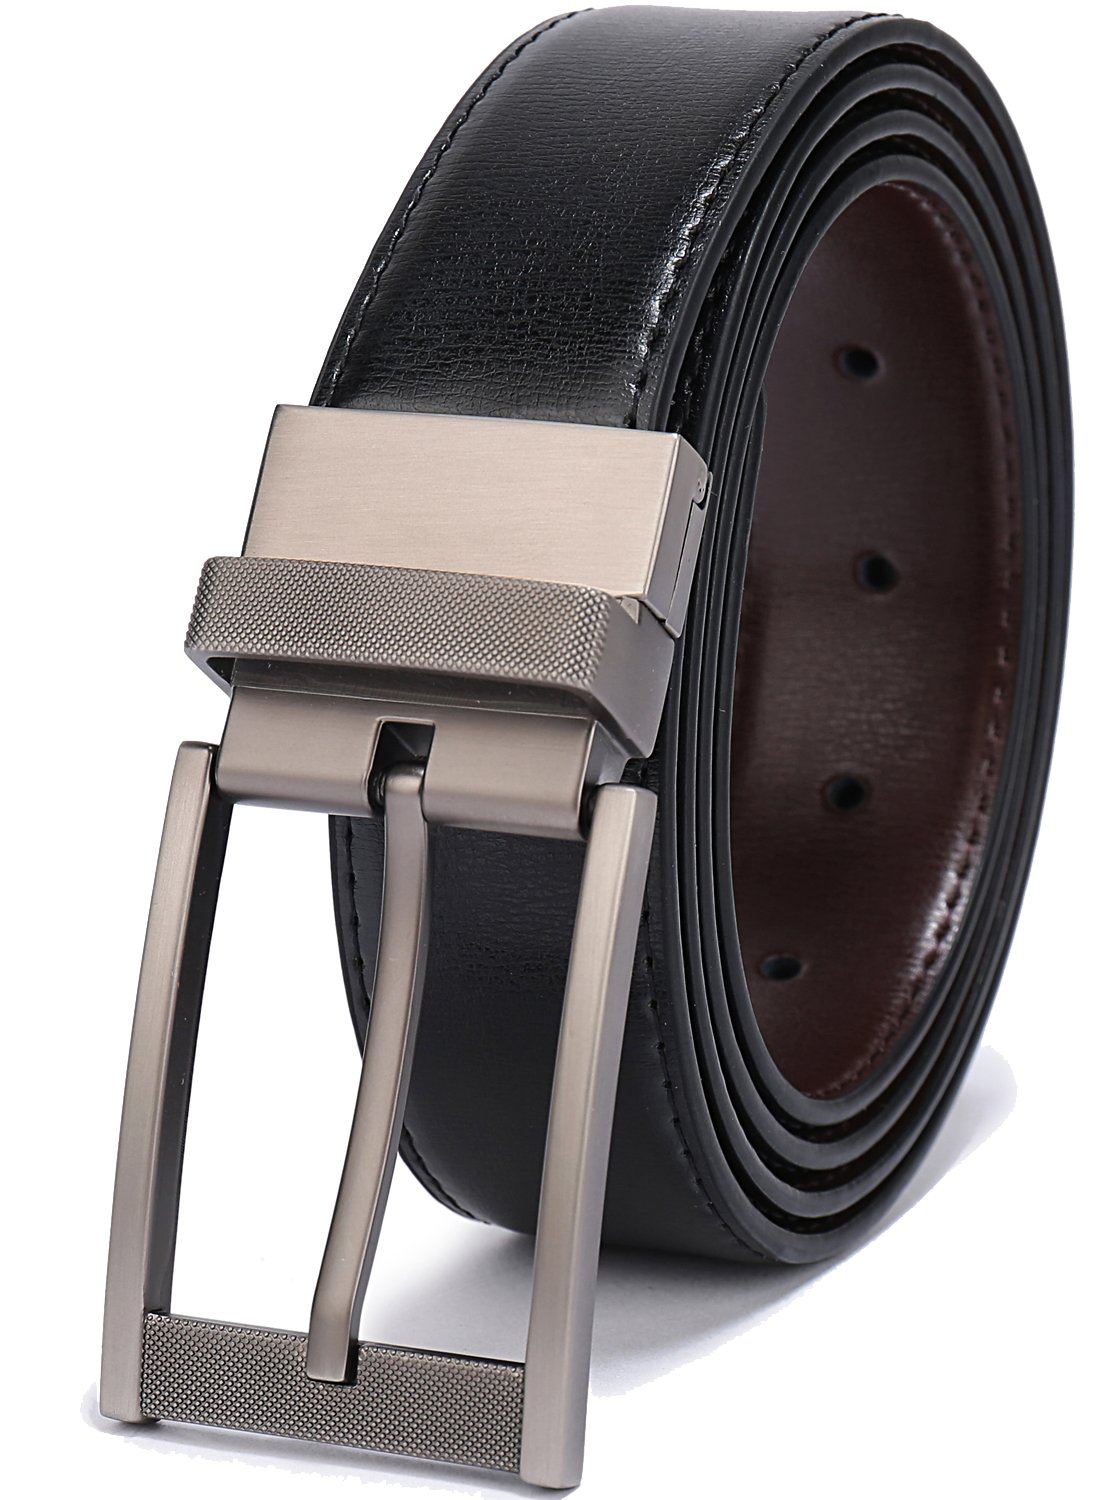 Belts for Men Reversible Leather 1.25'' Waist Strap Fashion Dress Buckle Beltox(34-36,Sub-brushed Buckle Black/Brown)